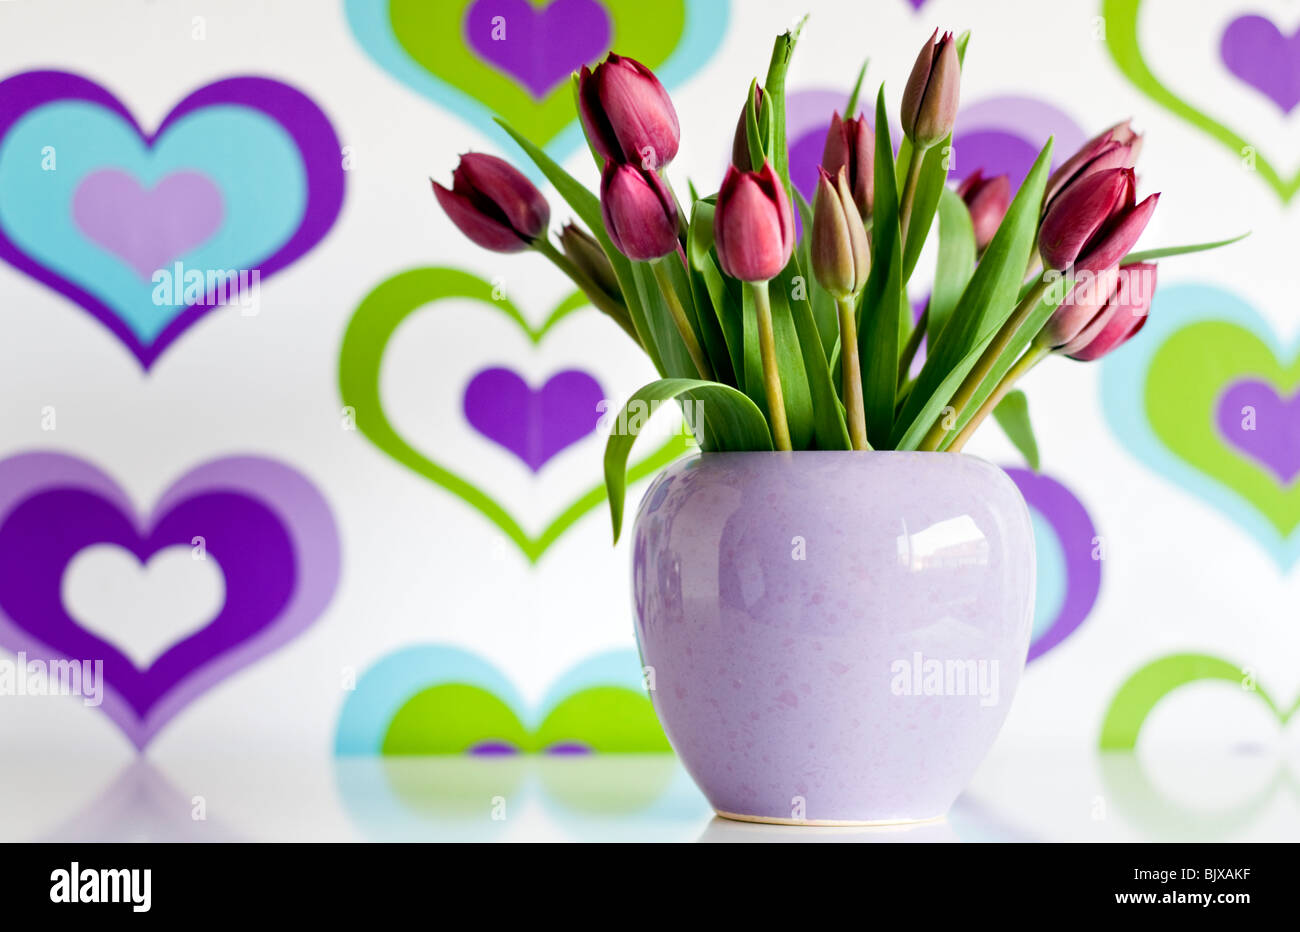 A vase of purple tulips in front of colorful wallpaper decorated with a heart pattern - Stock Image